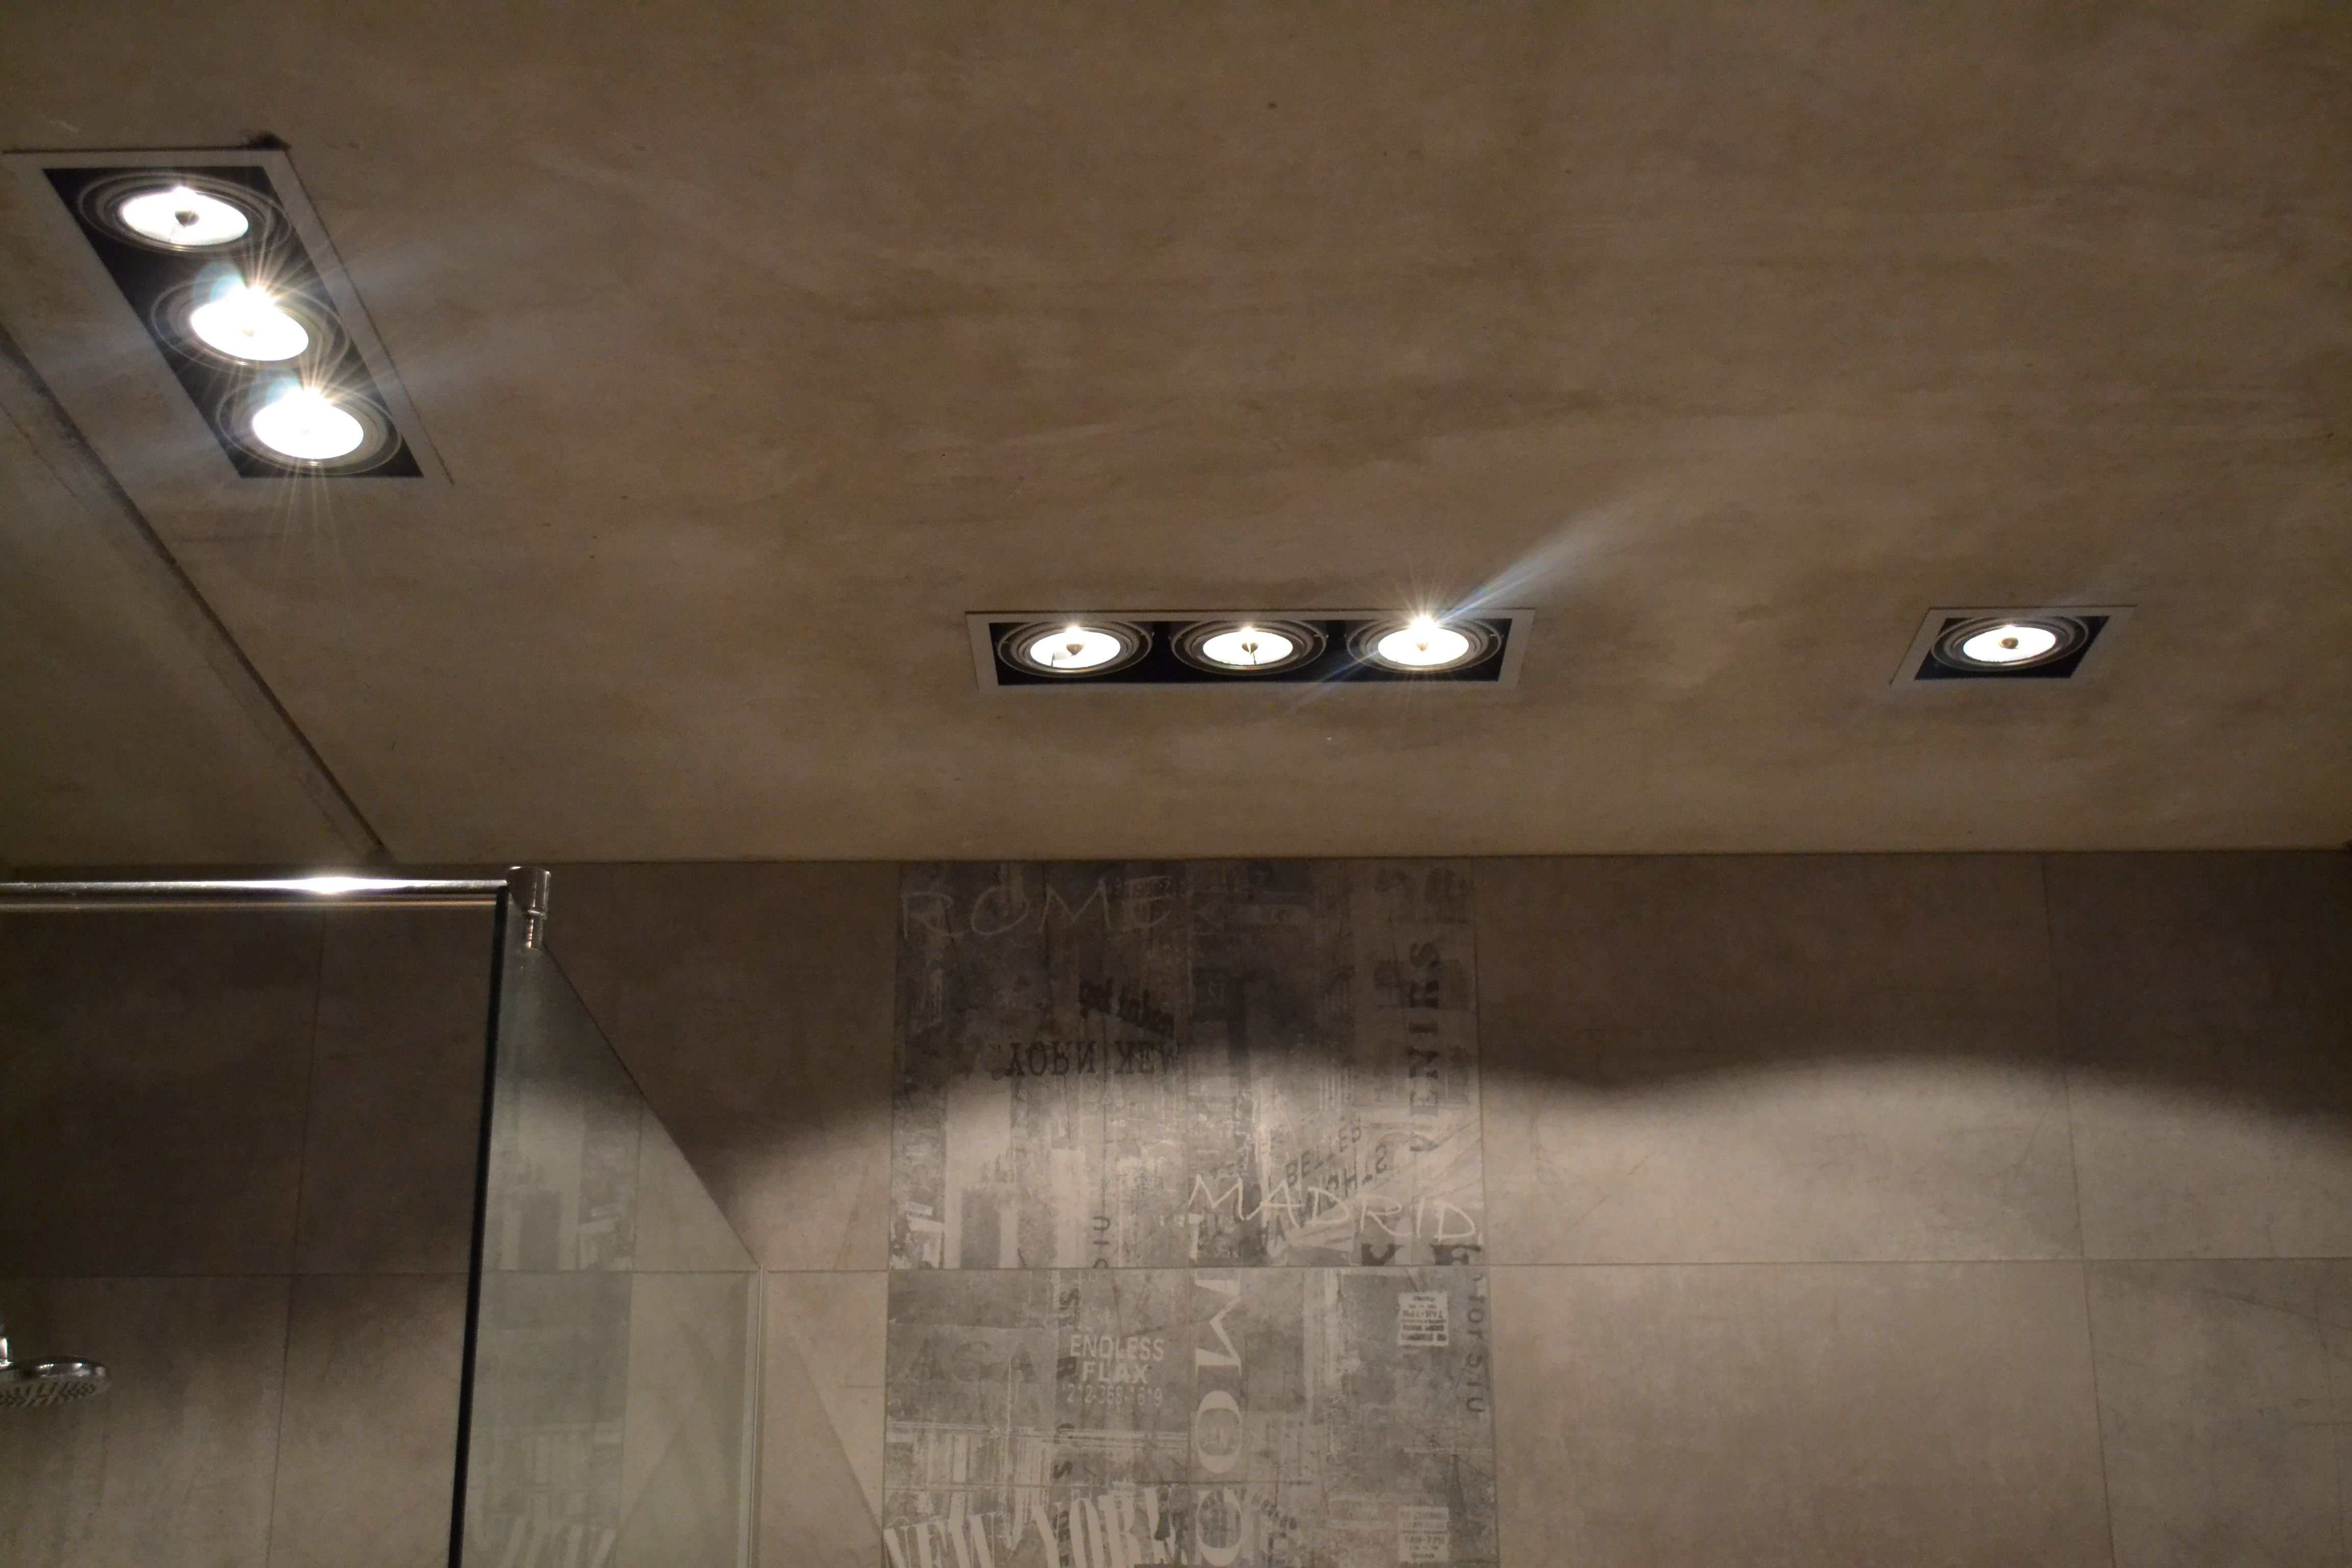 Luciferos Incas spots used as recessed lighting. These are with qr111 bulbs - quite big bulbs giving a light with sting.